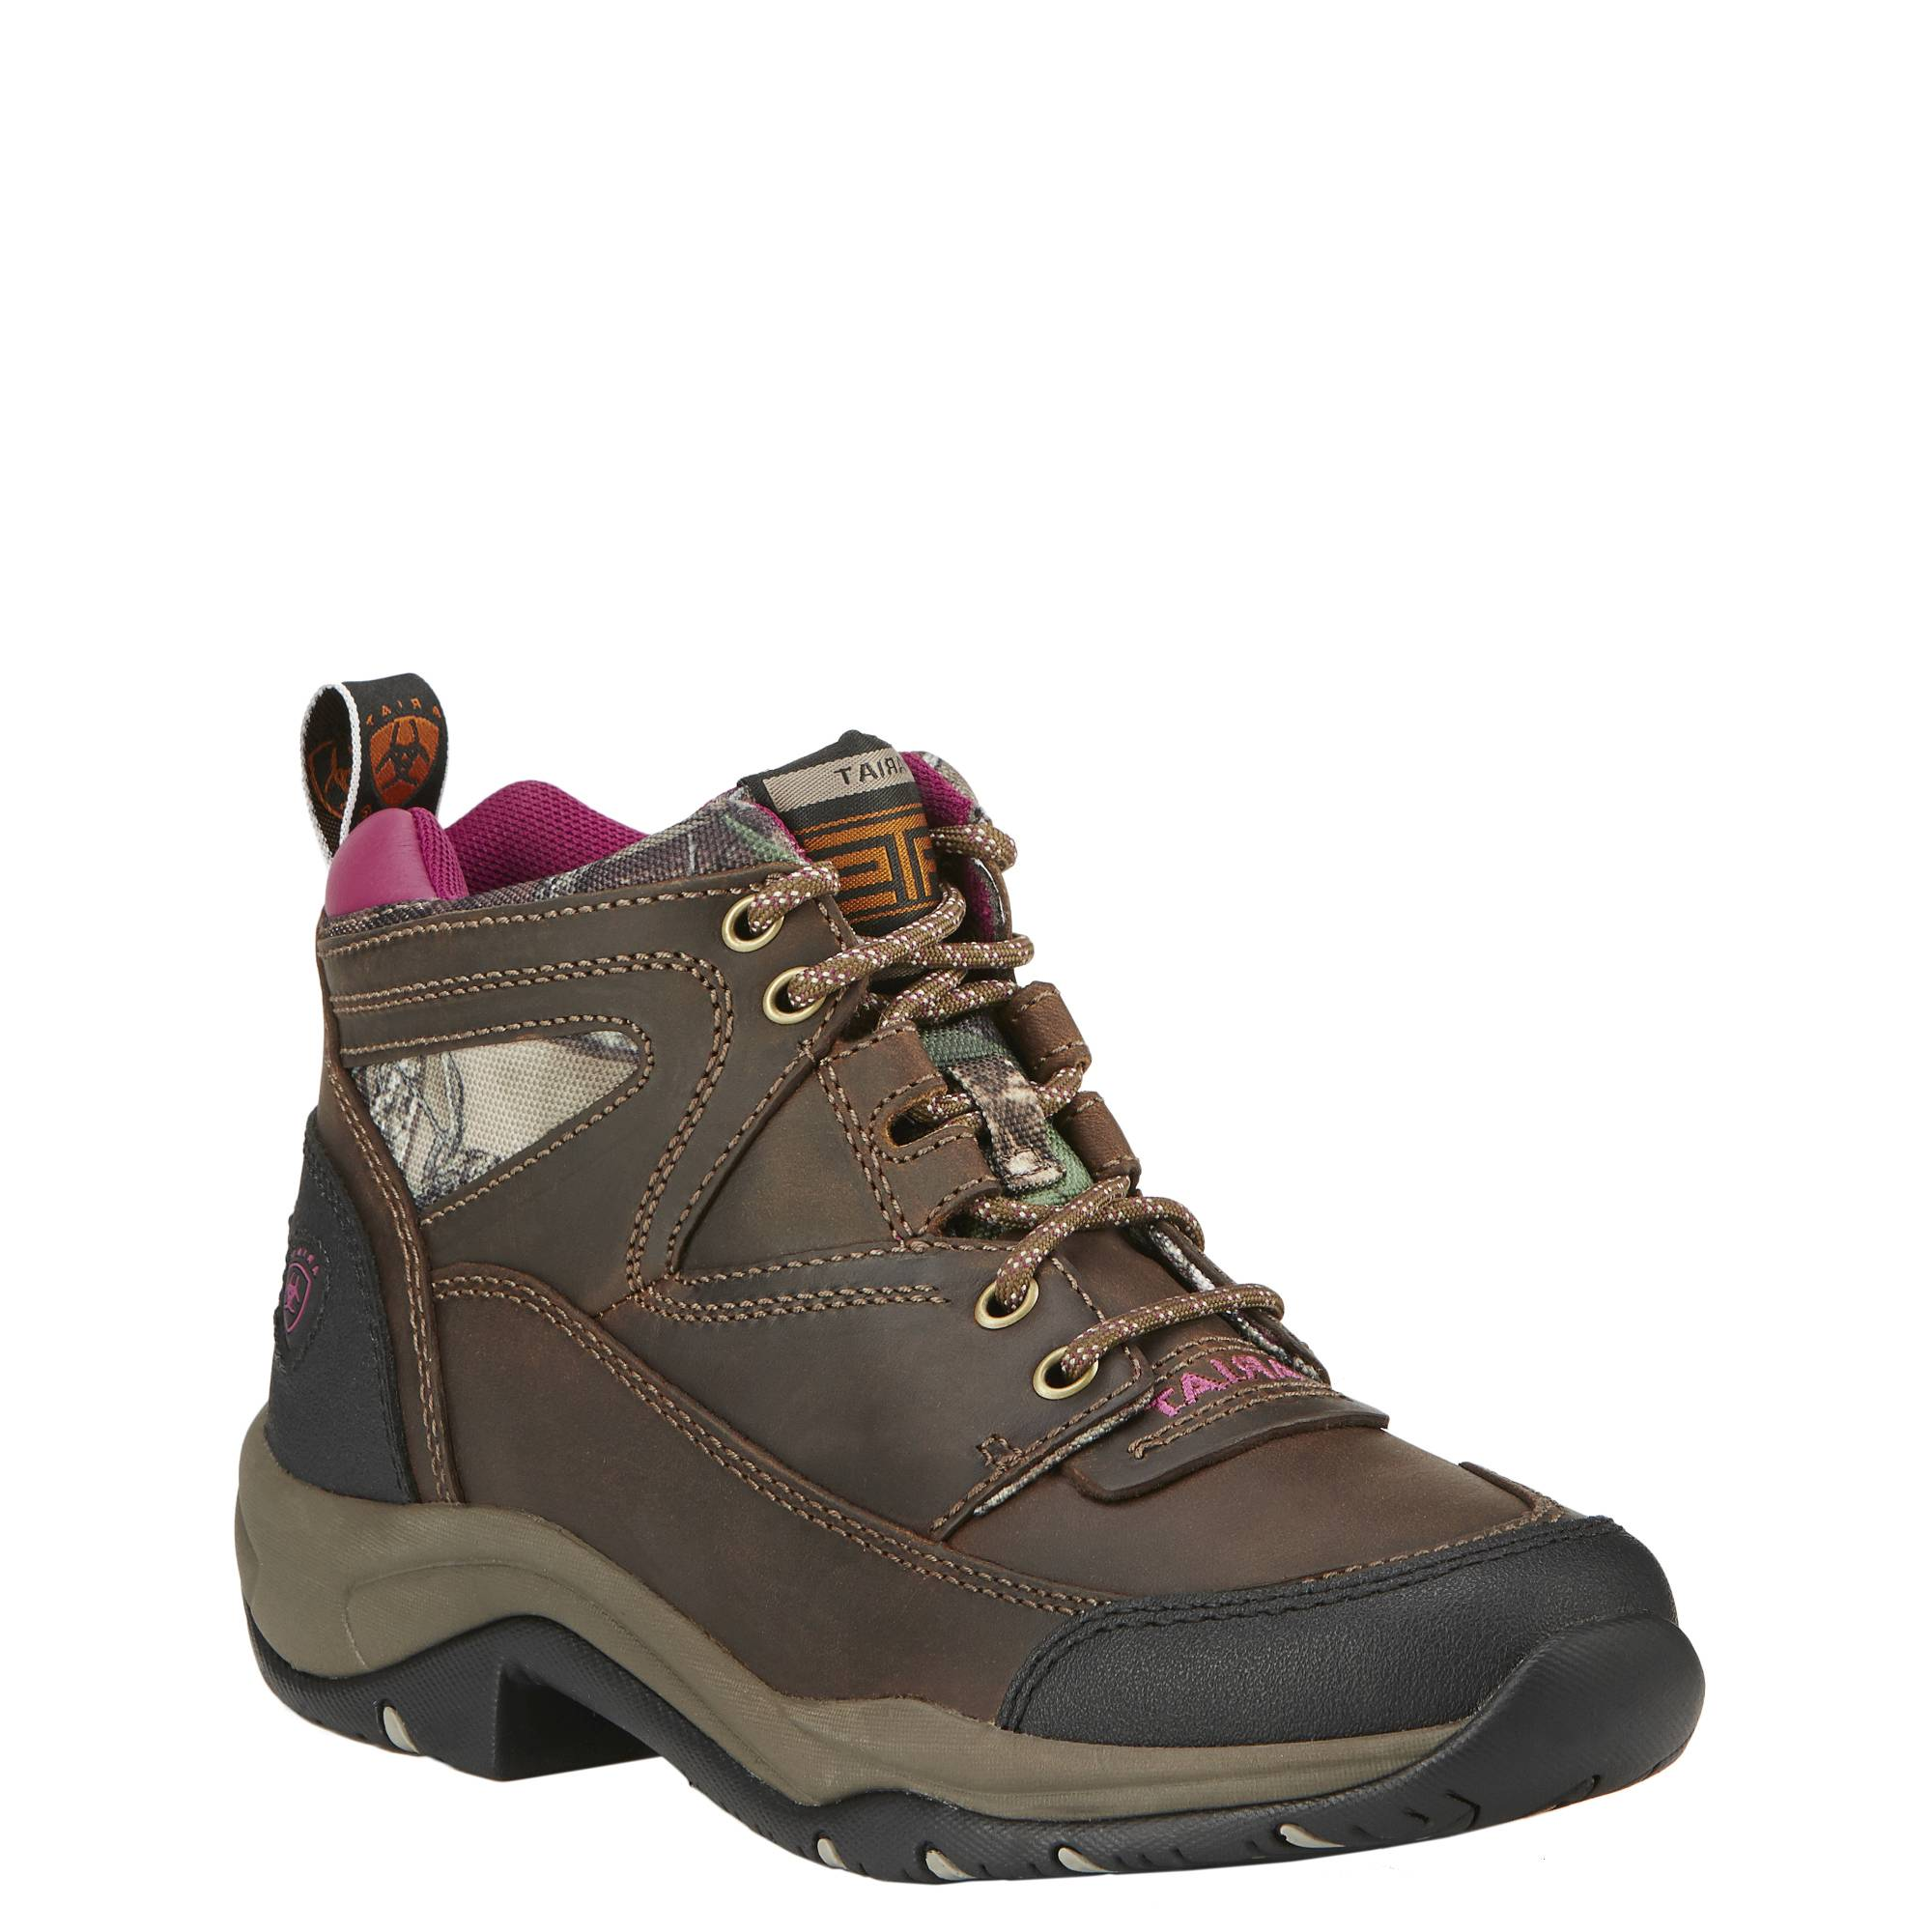 ARIAT Women's Terrain